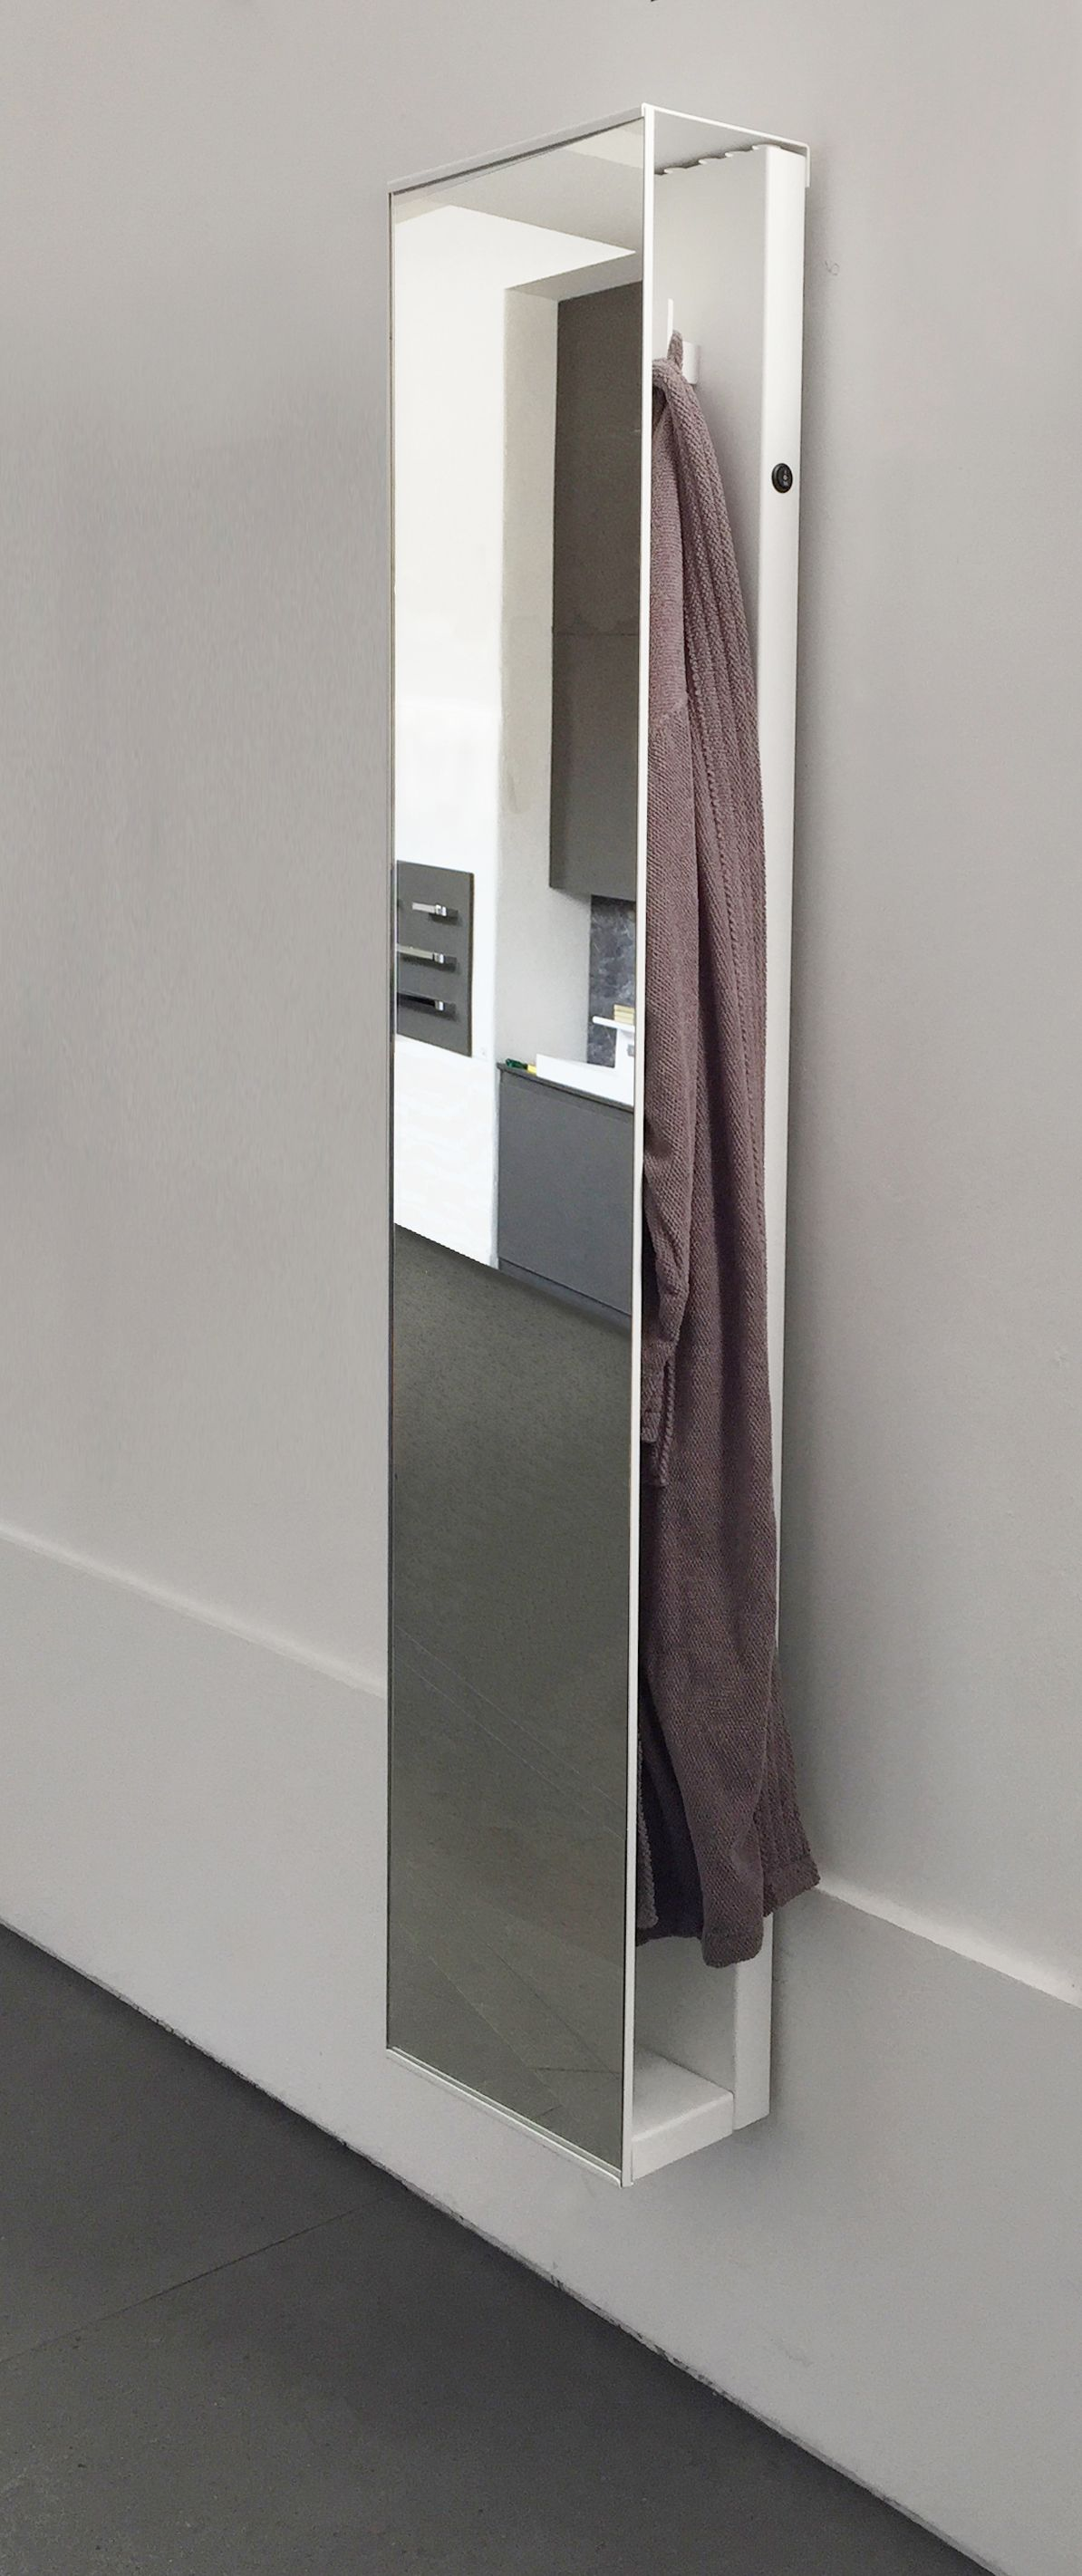 Discover all the information about the product Hot water towel radiator /  aluminum / original design / bathroom ROBE RADIATORE E SCALDA SALVIETTE -  and find ...